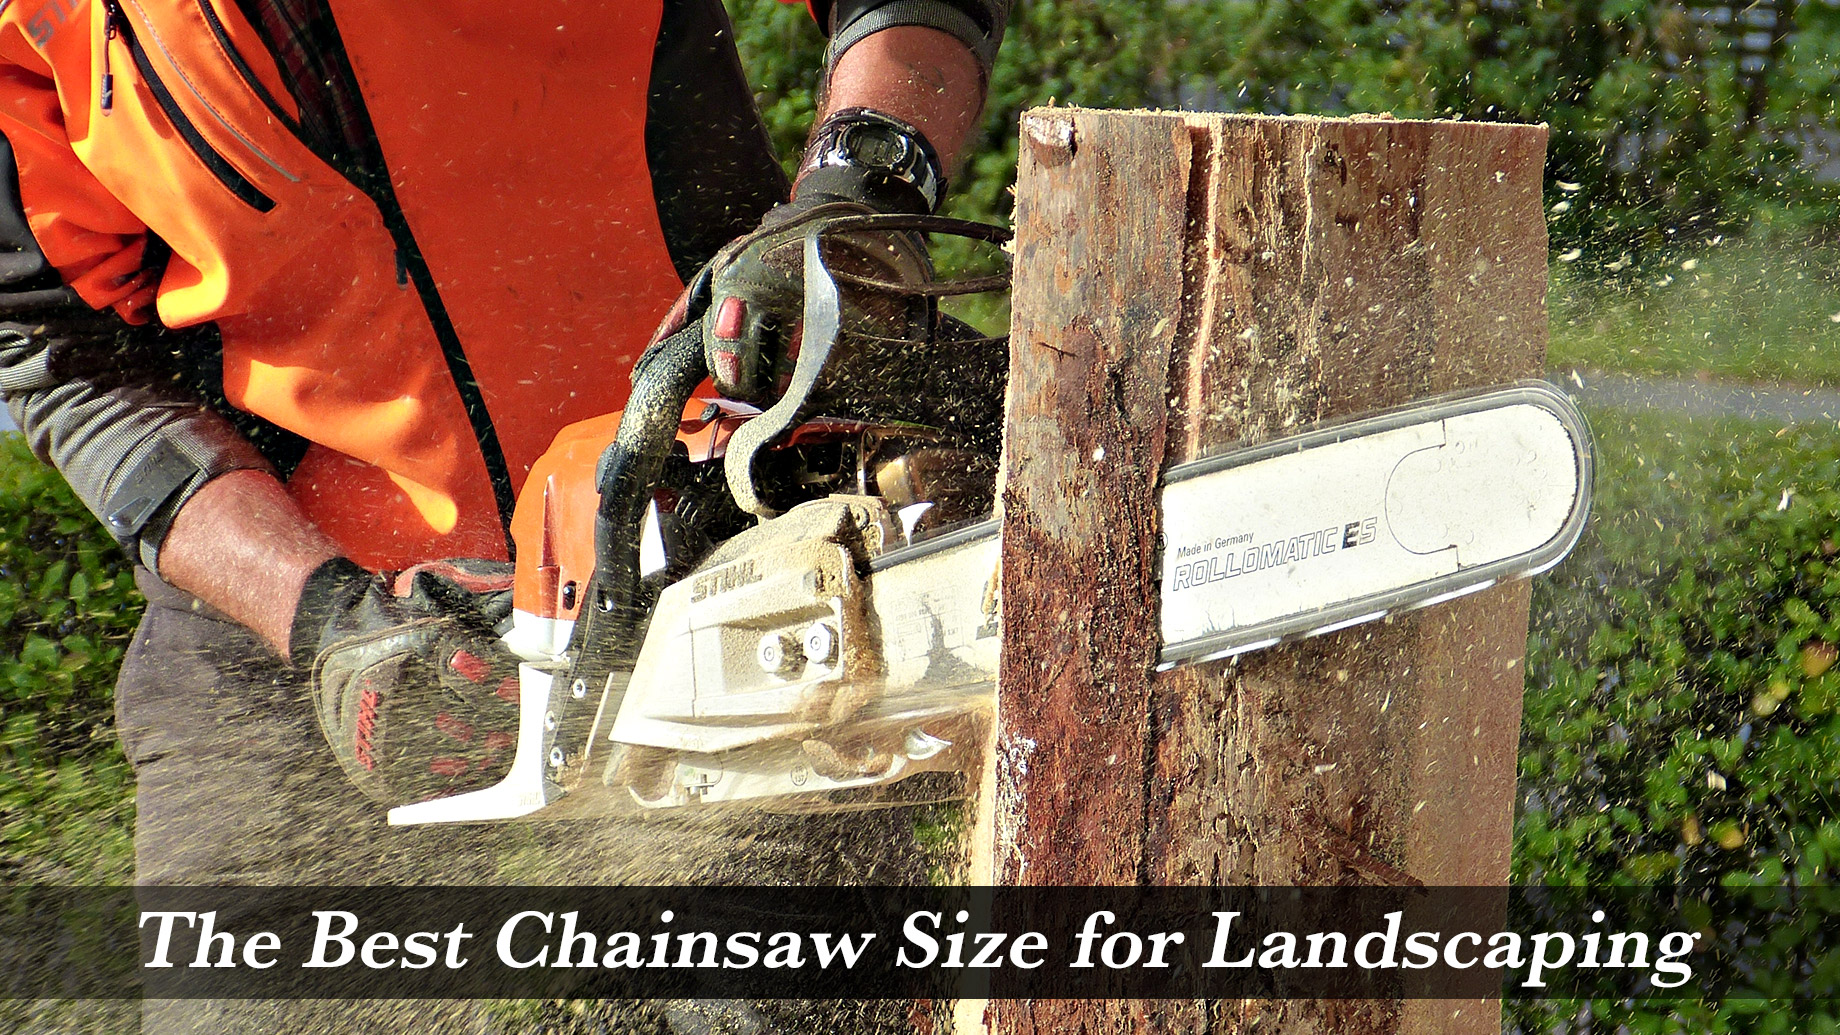 The Best Chainsaw Size for Landscaping